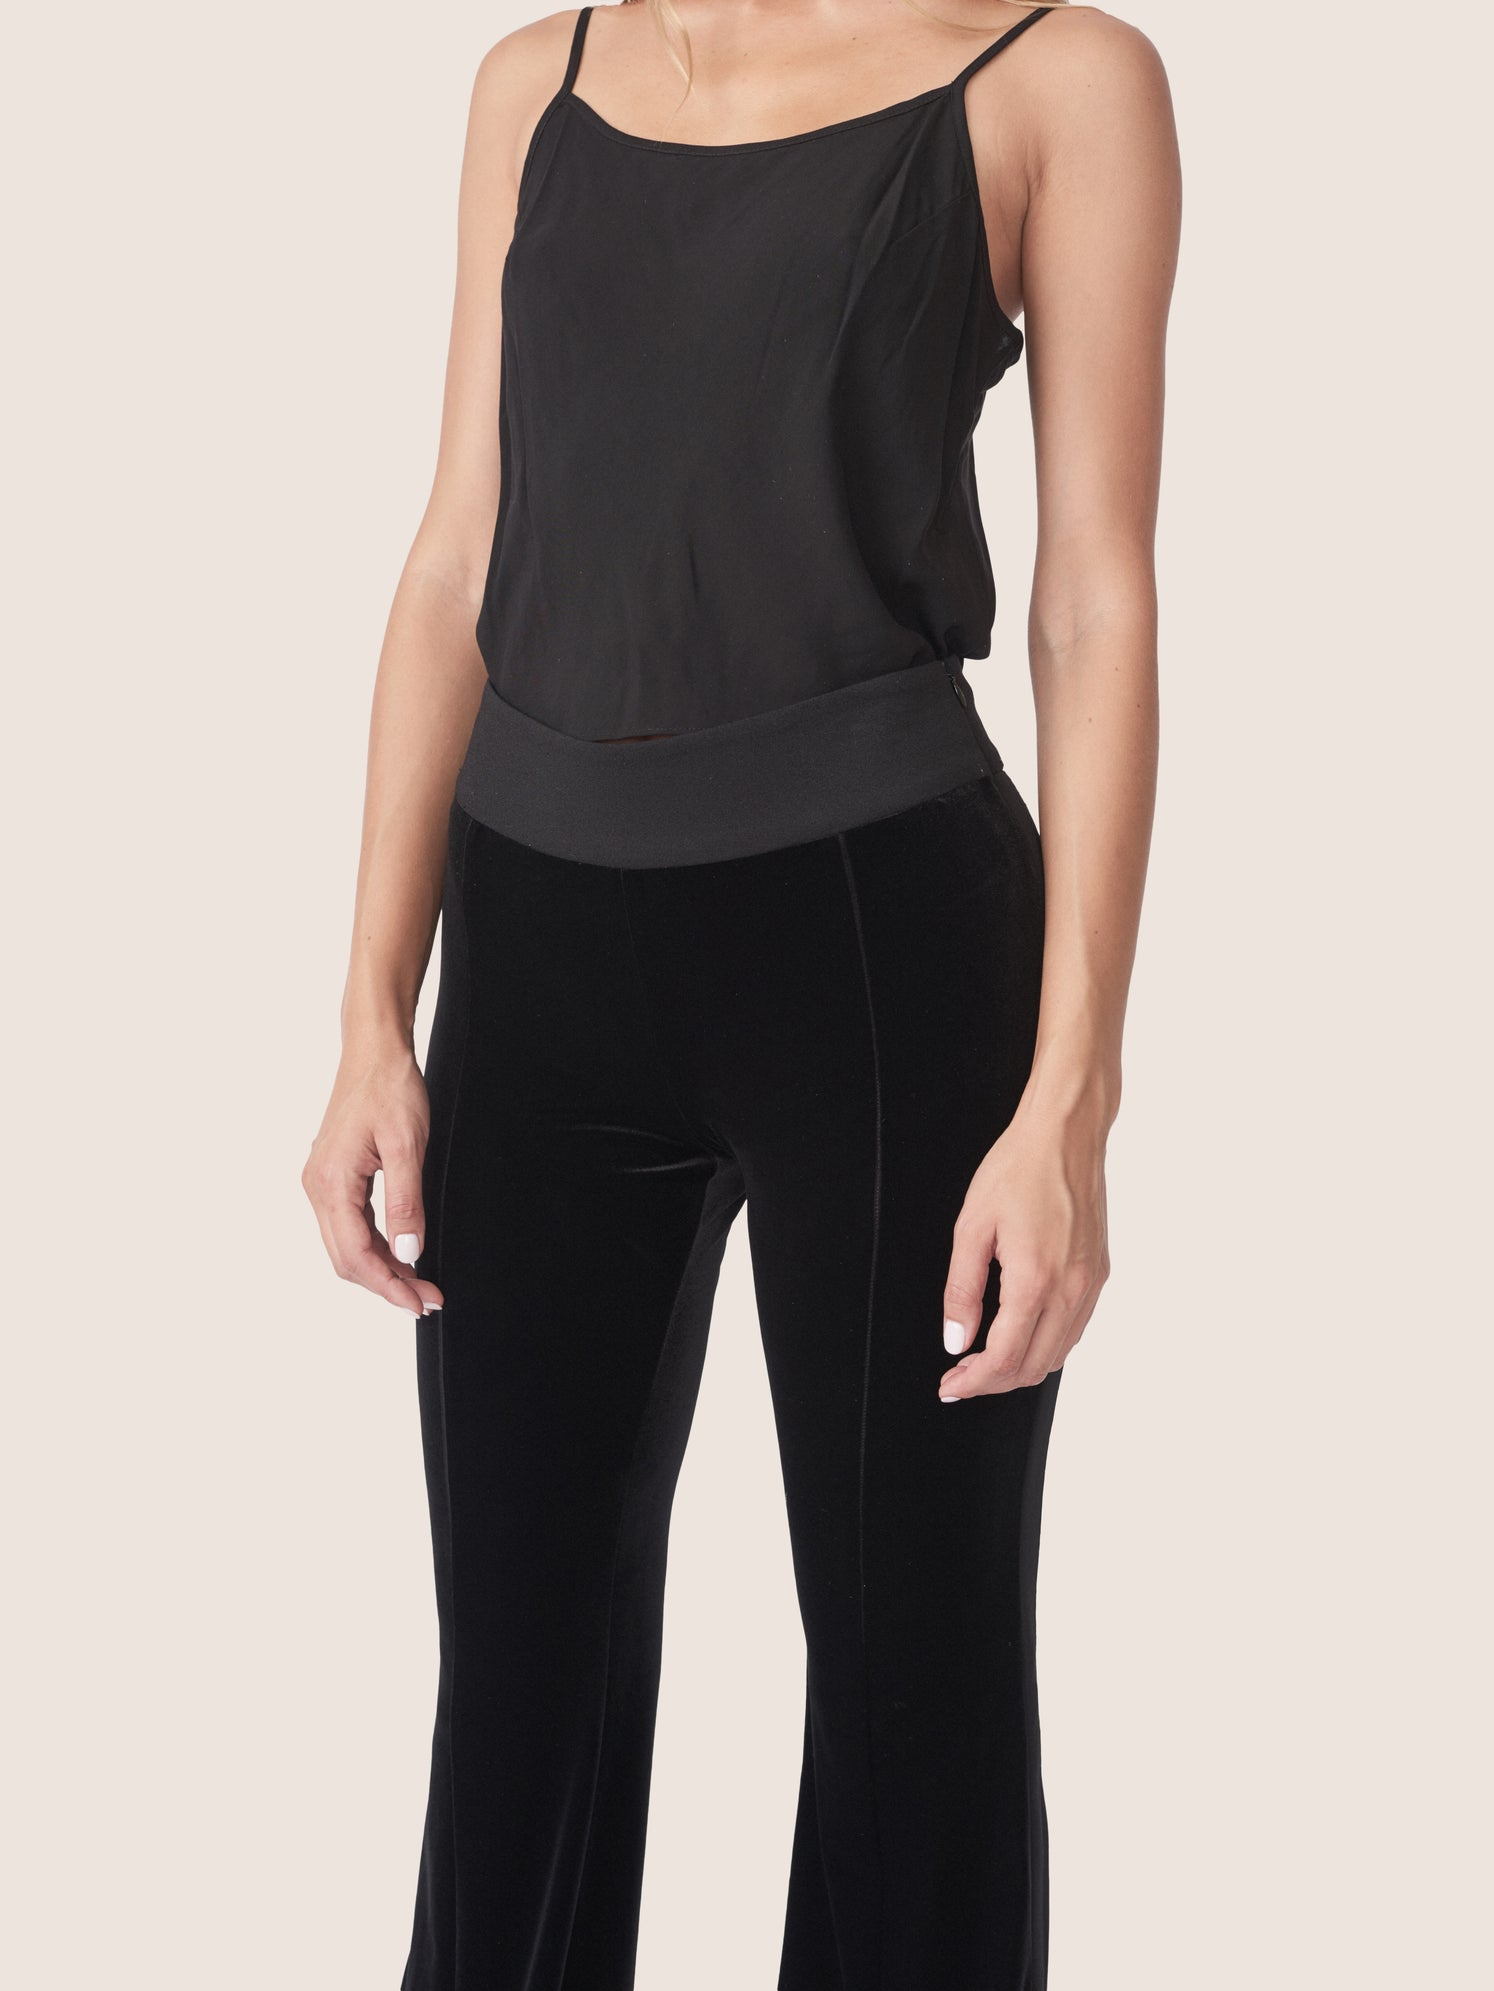 Stretch velvet slim flared pants with a contrast waistband and side stripe